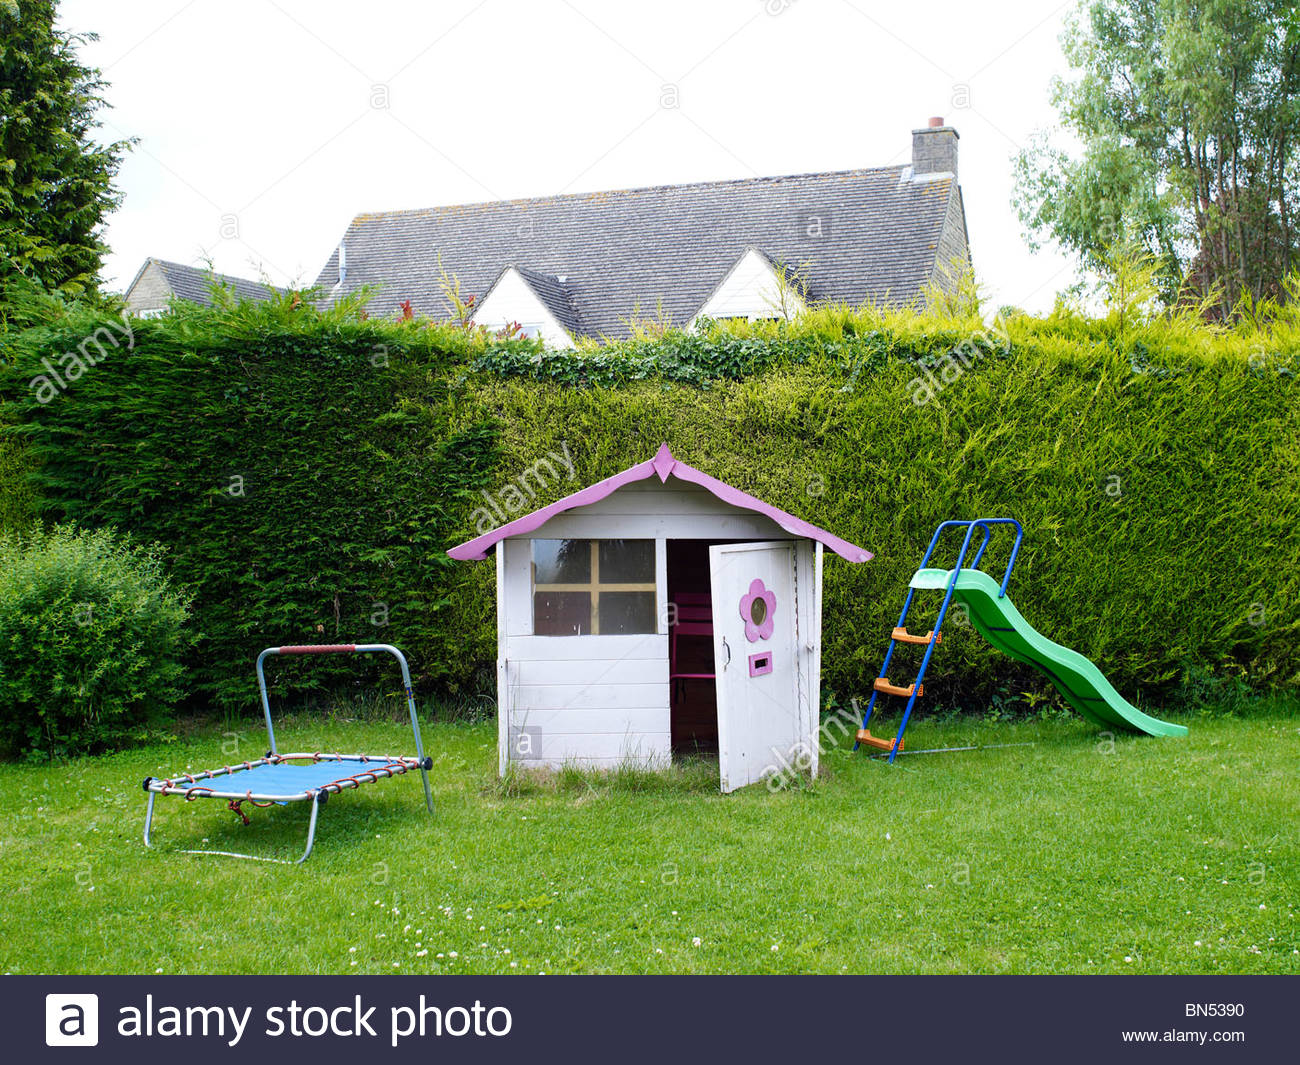 Pink Wendy House for children to play in in a garden Stock Photo